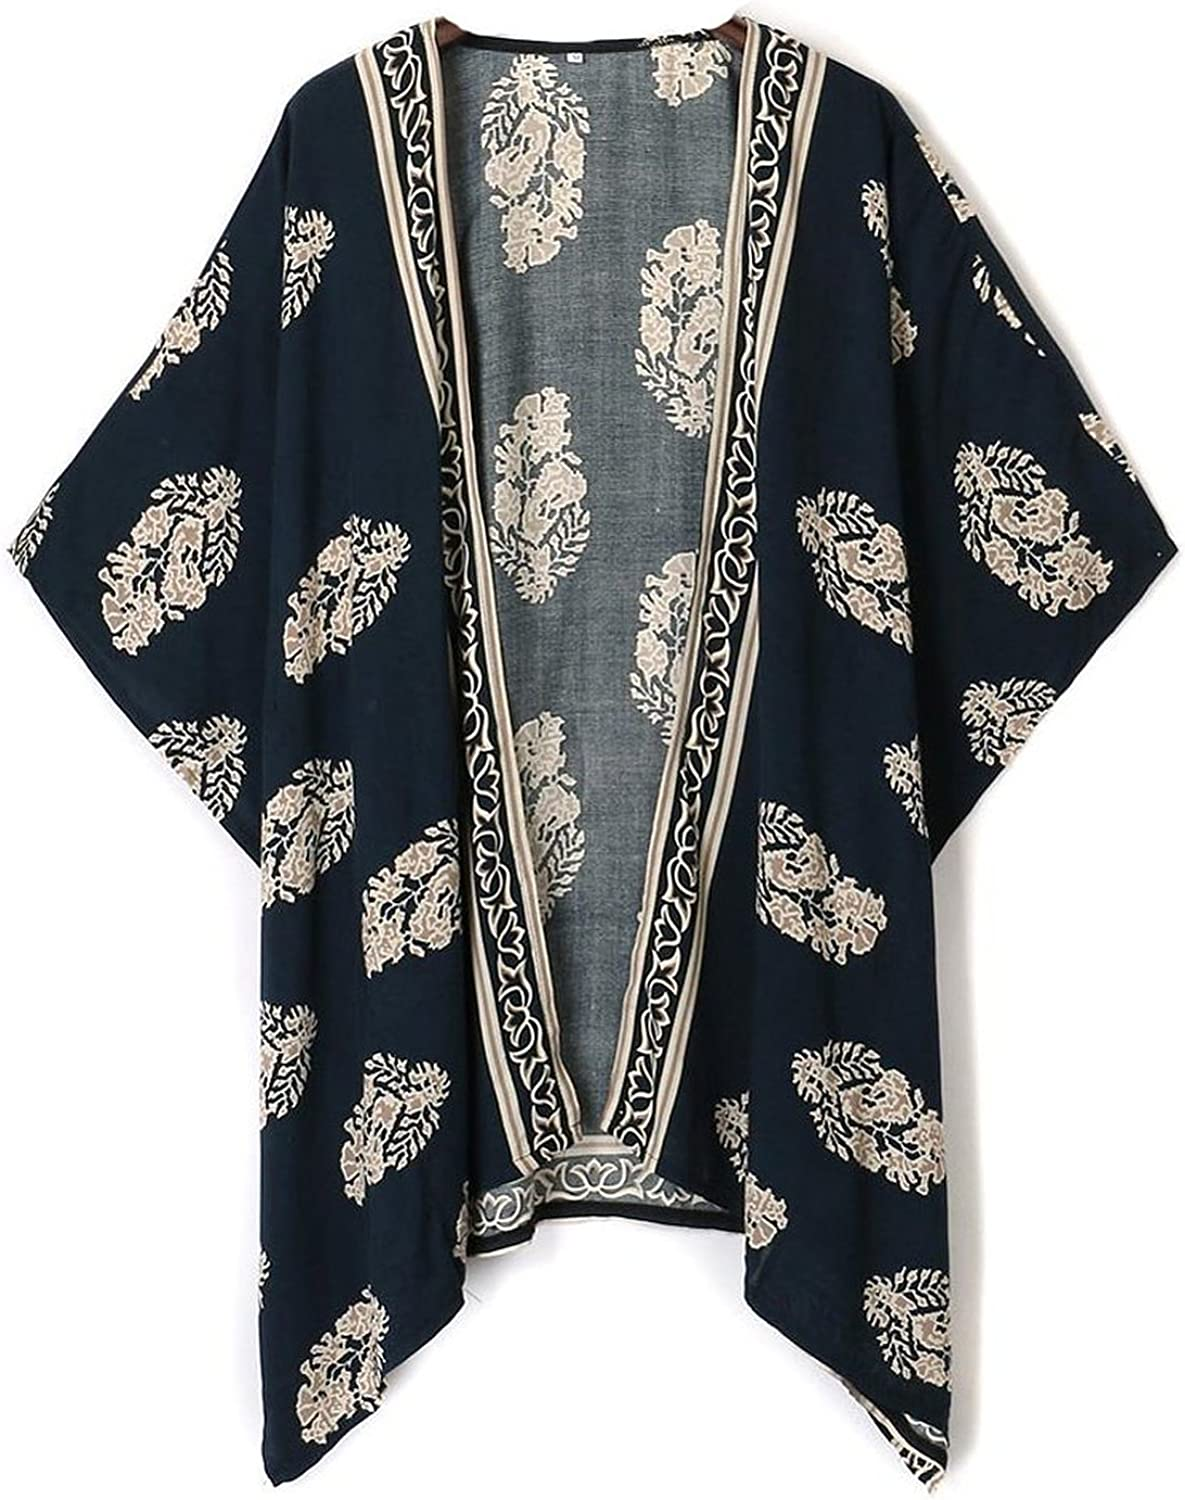 Choies Women's Leaf Print Open Front Batwing Half Sleeve Kimono Cover-ups